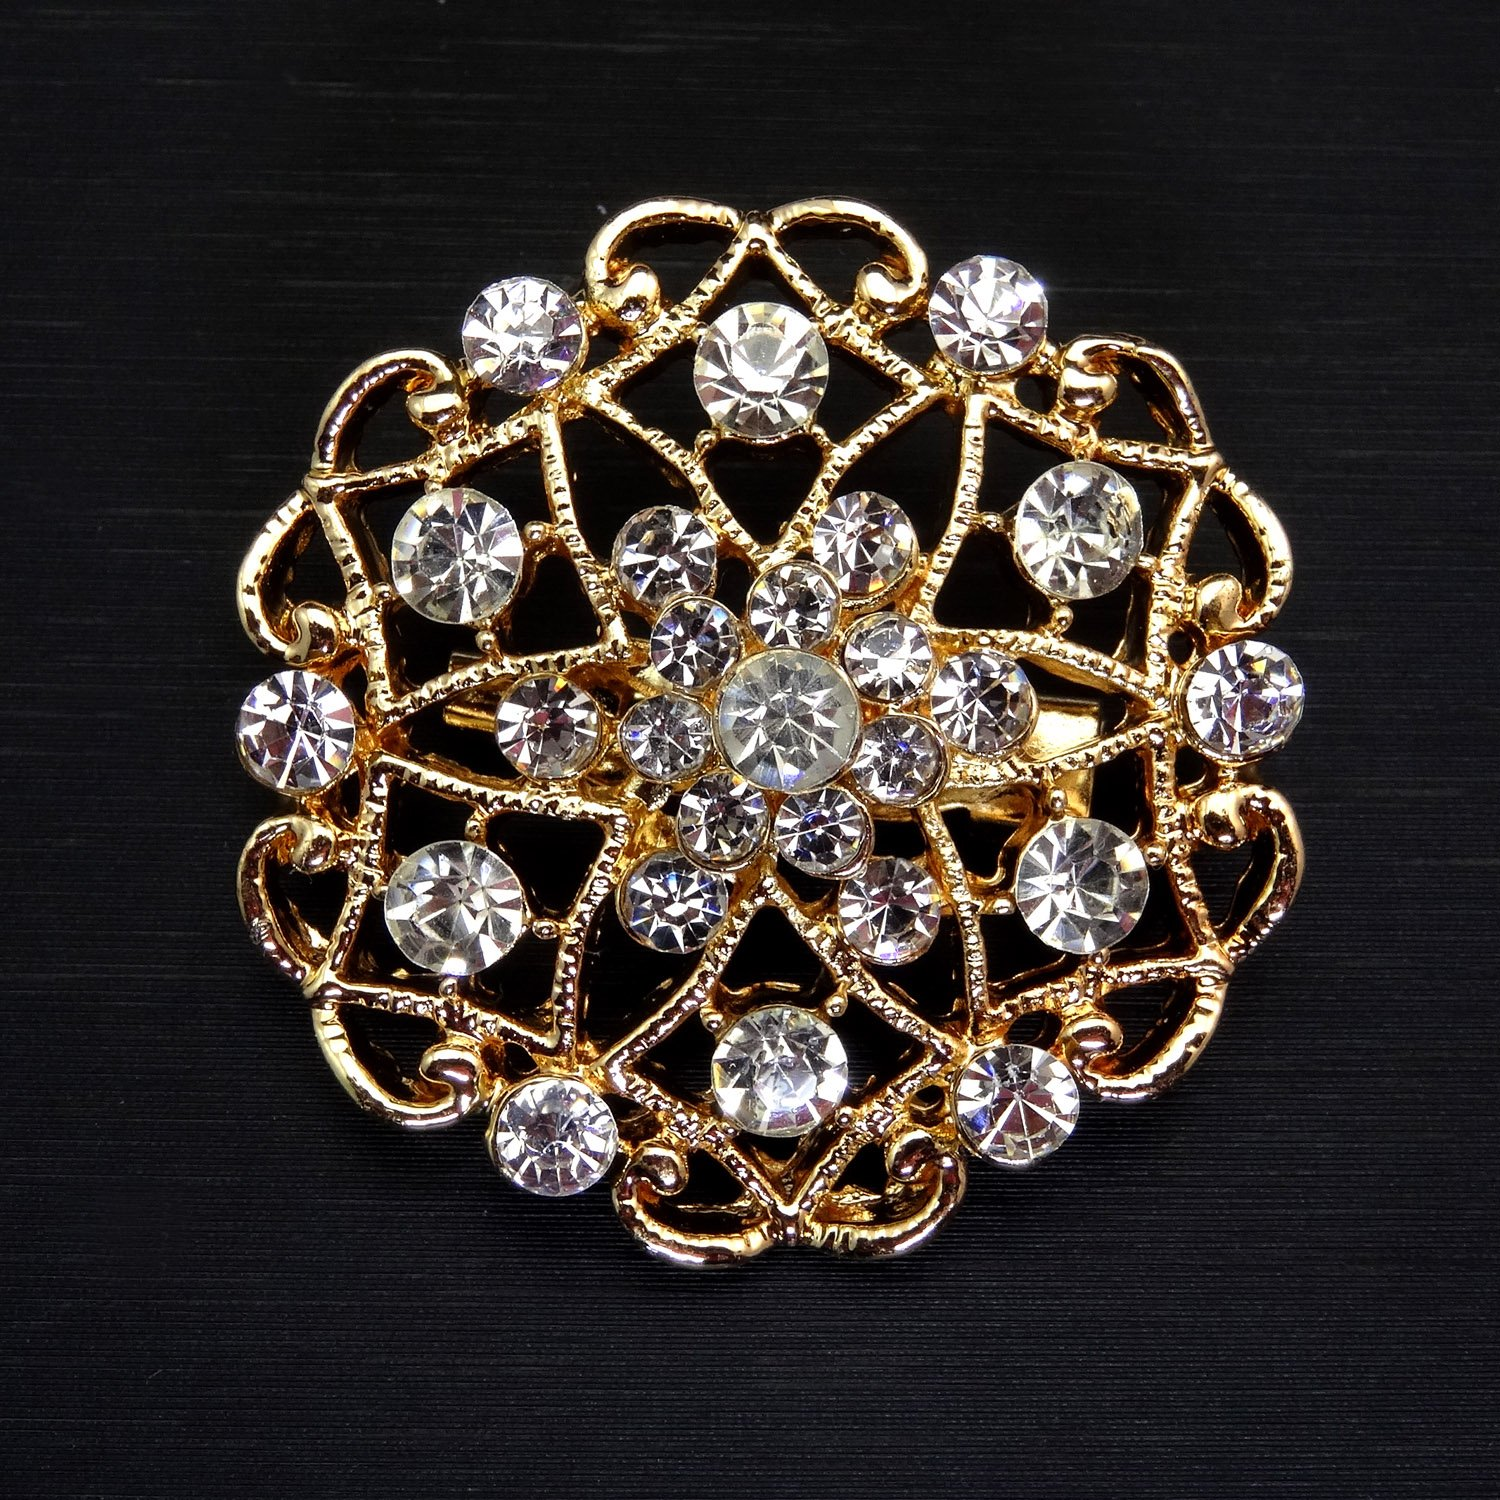 TOOKY 12pcs Mix Set Crystal Brooches Flower Brooch Collar Pin Corsage Bouquet Decor Wholesale Lot DIY BROACH wzzByyq